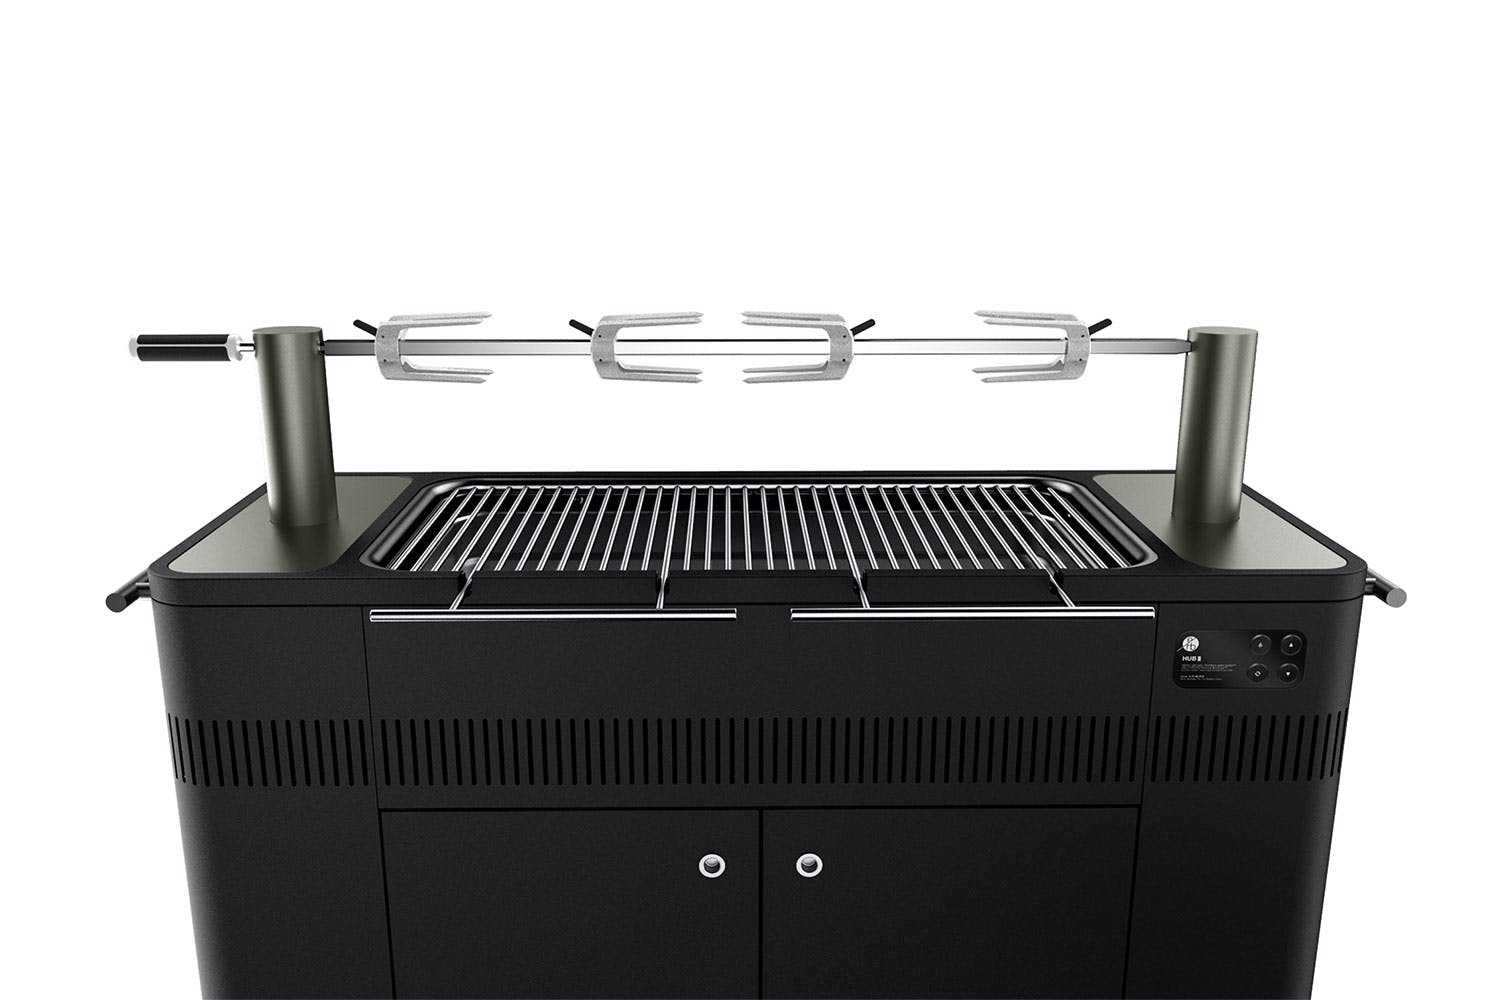 Everdure Hub II Charcoal Barbeque by Heston Blumenthal